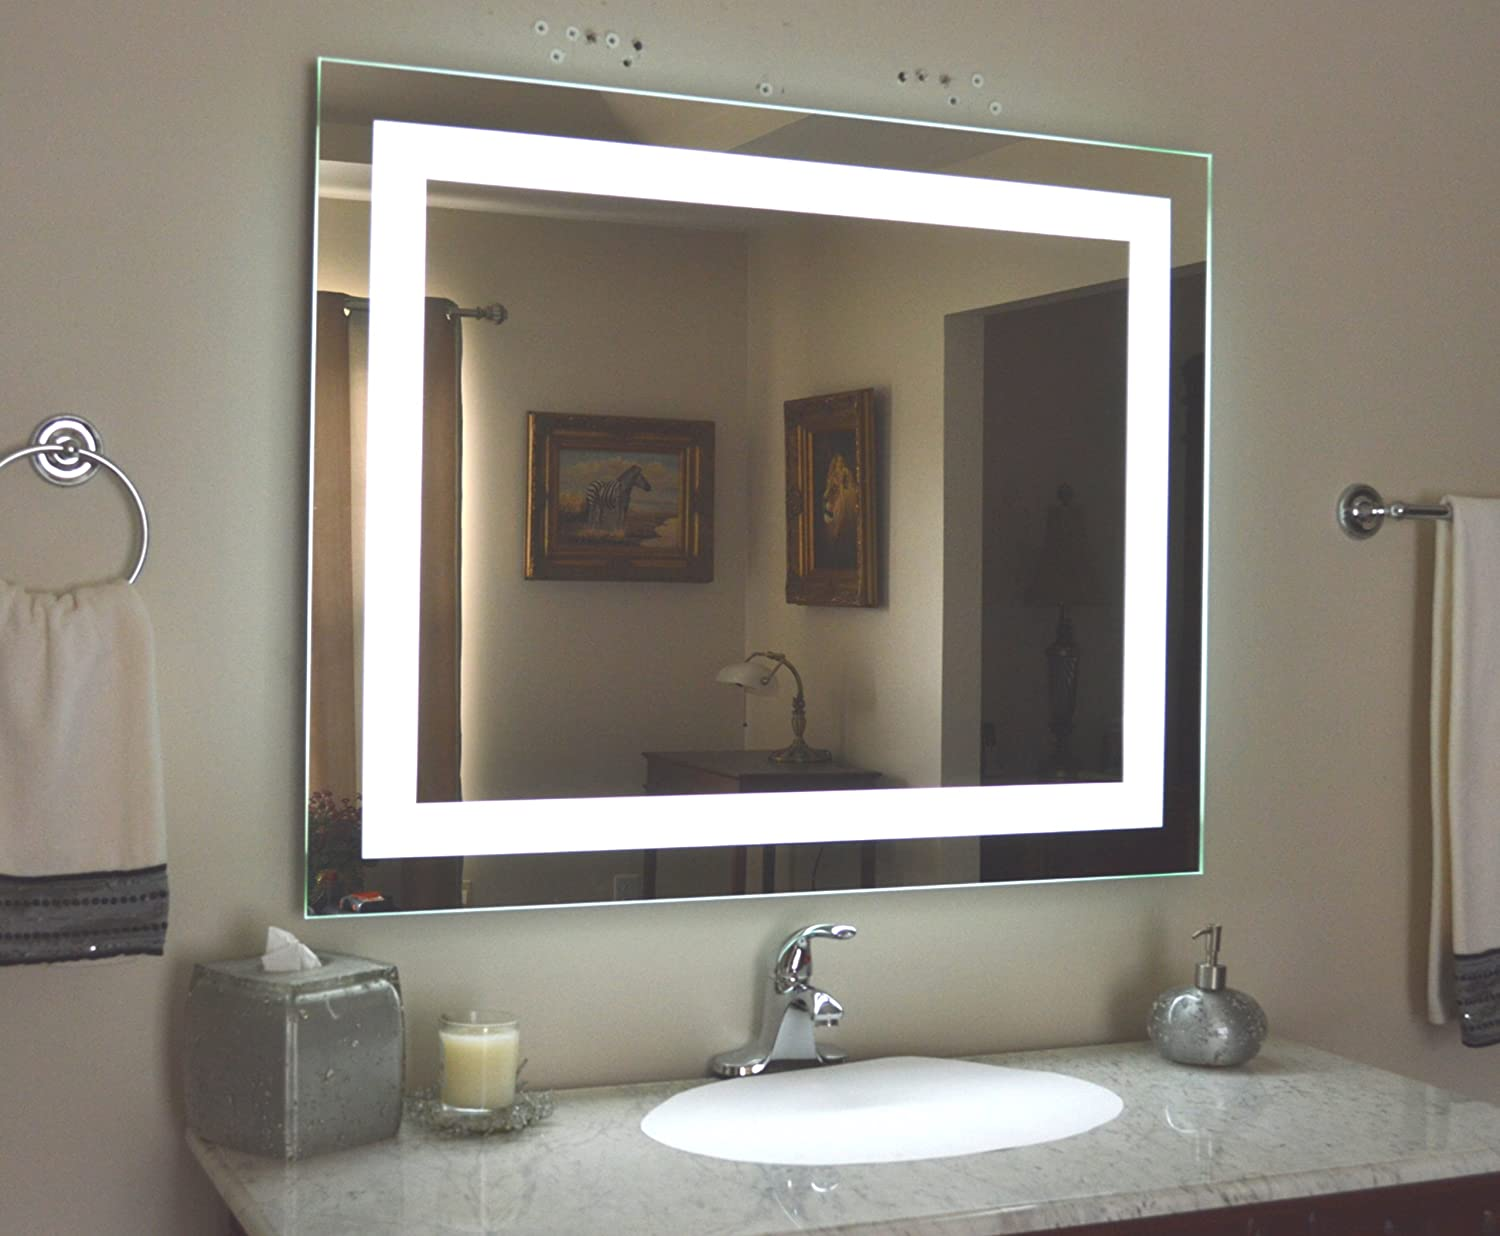 Bathroom Mirrors With Led Lights. Amazon Com Wall Mounted Lighted Vanity Mirror Led Mam84032 Commercial Grade 40 Home Kitchen